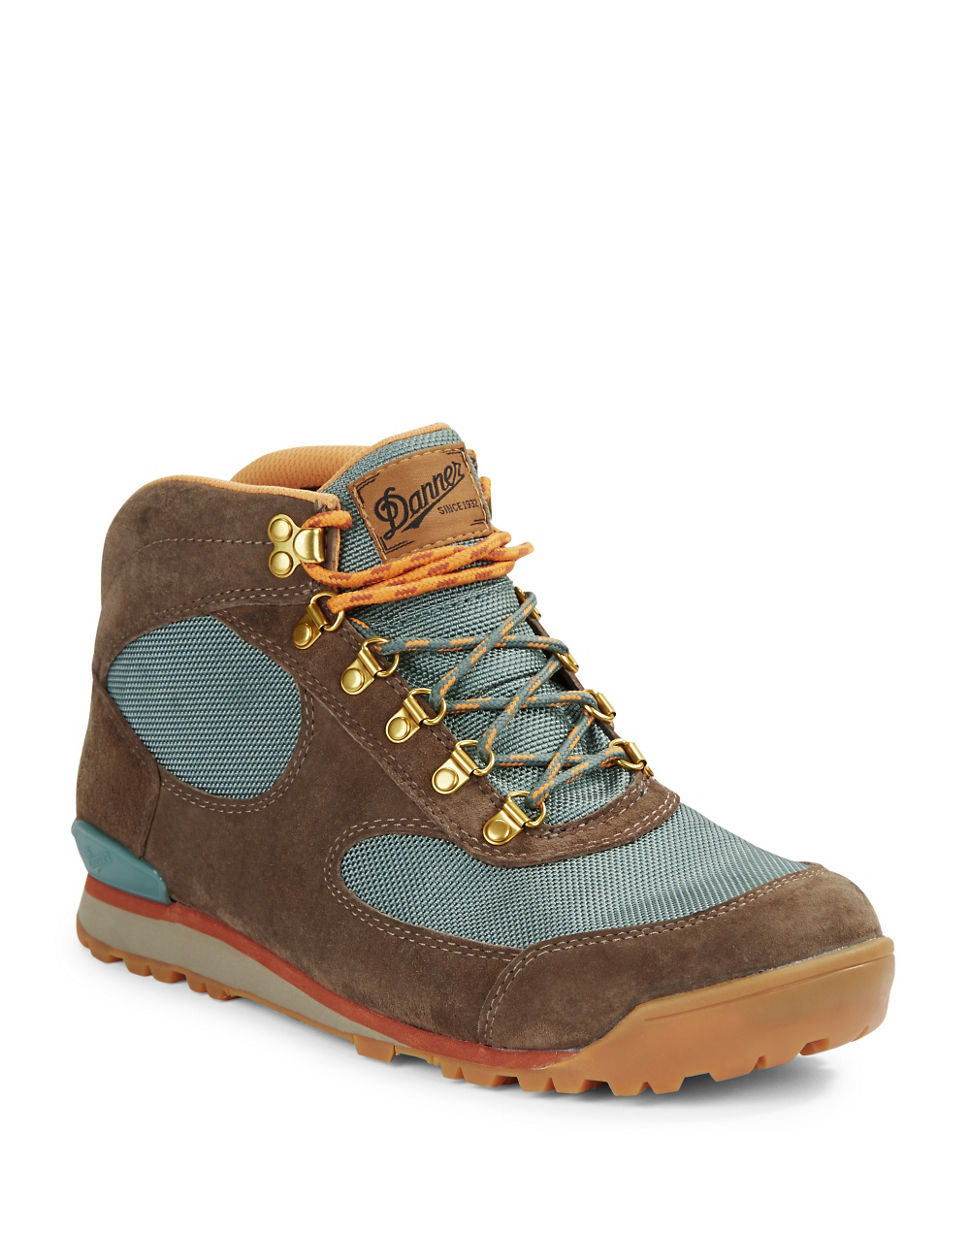 Danner Jag Colorblocked Hiking Boots In Blue For Men Lyst